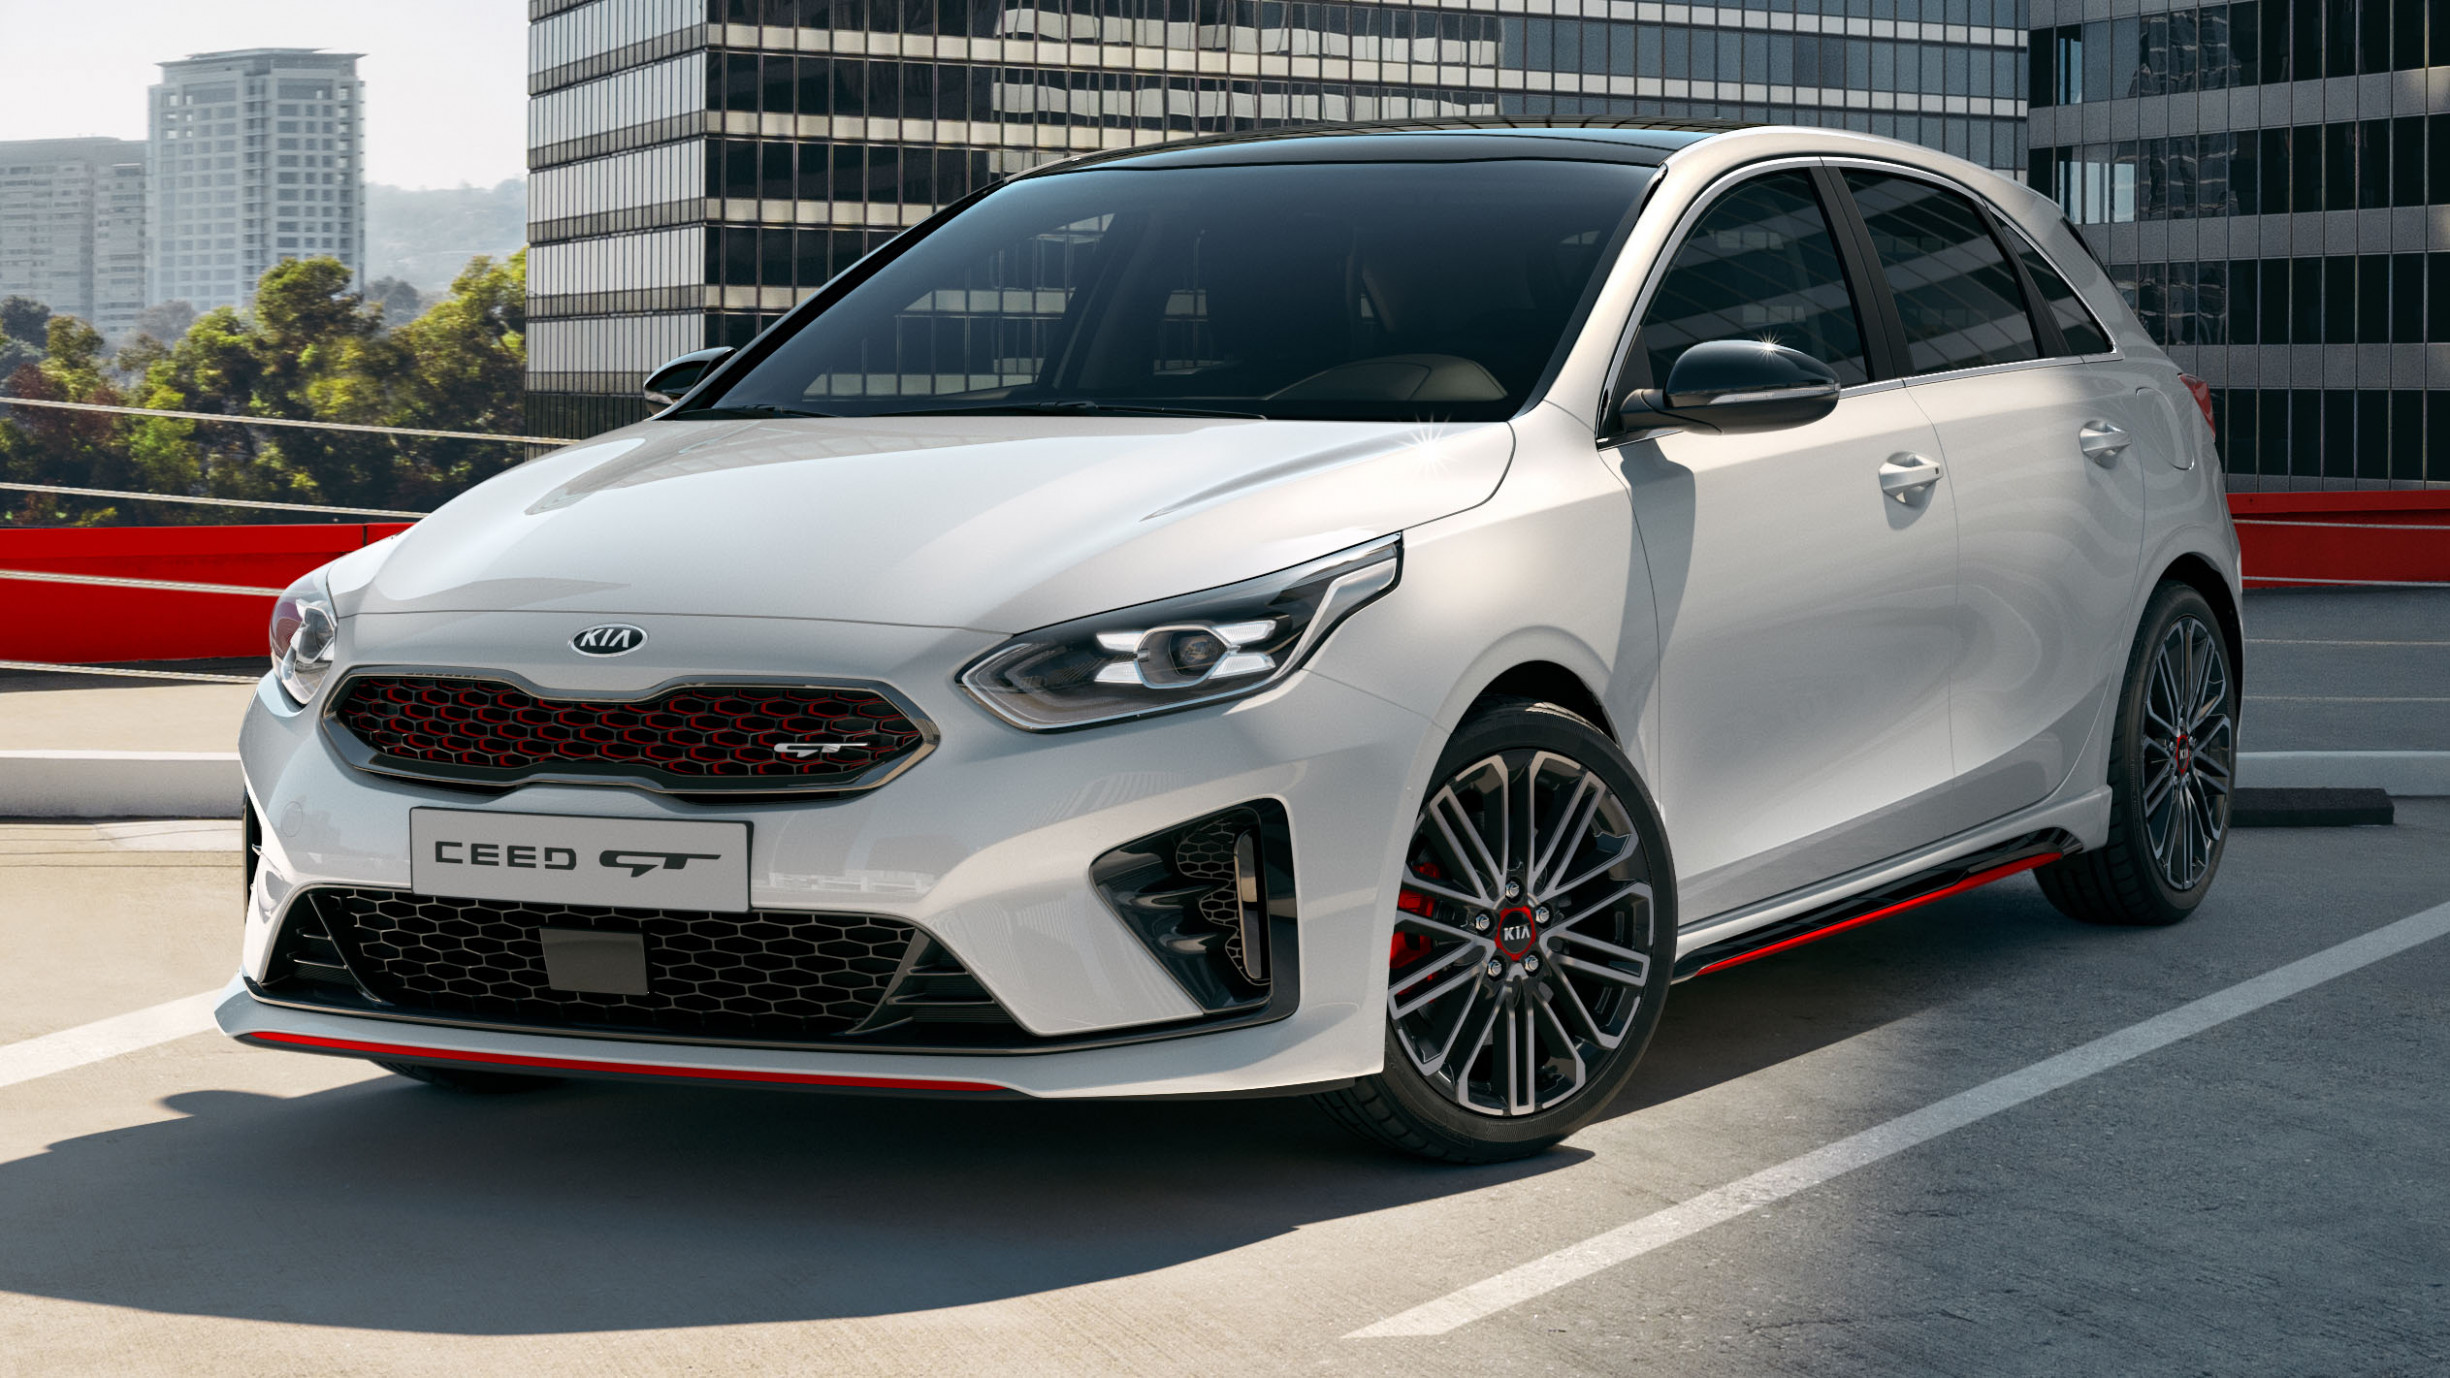 9 Kia Cerato GT previewed? Ceed GT, K9 GT revealed overnight ...